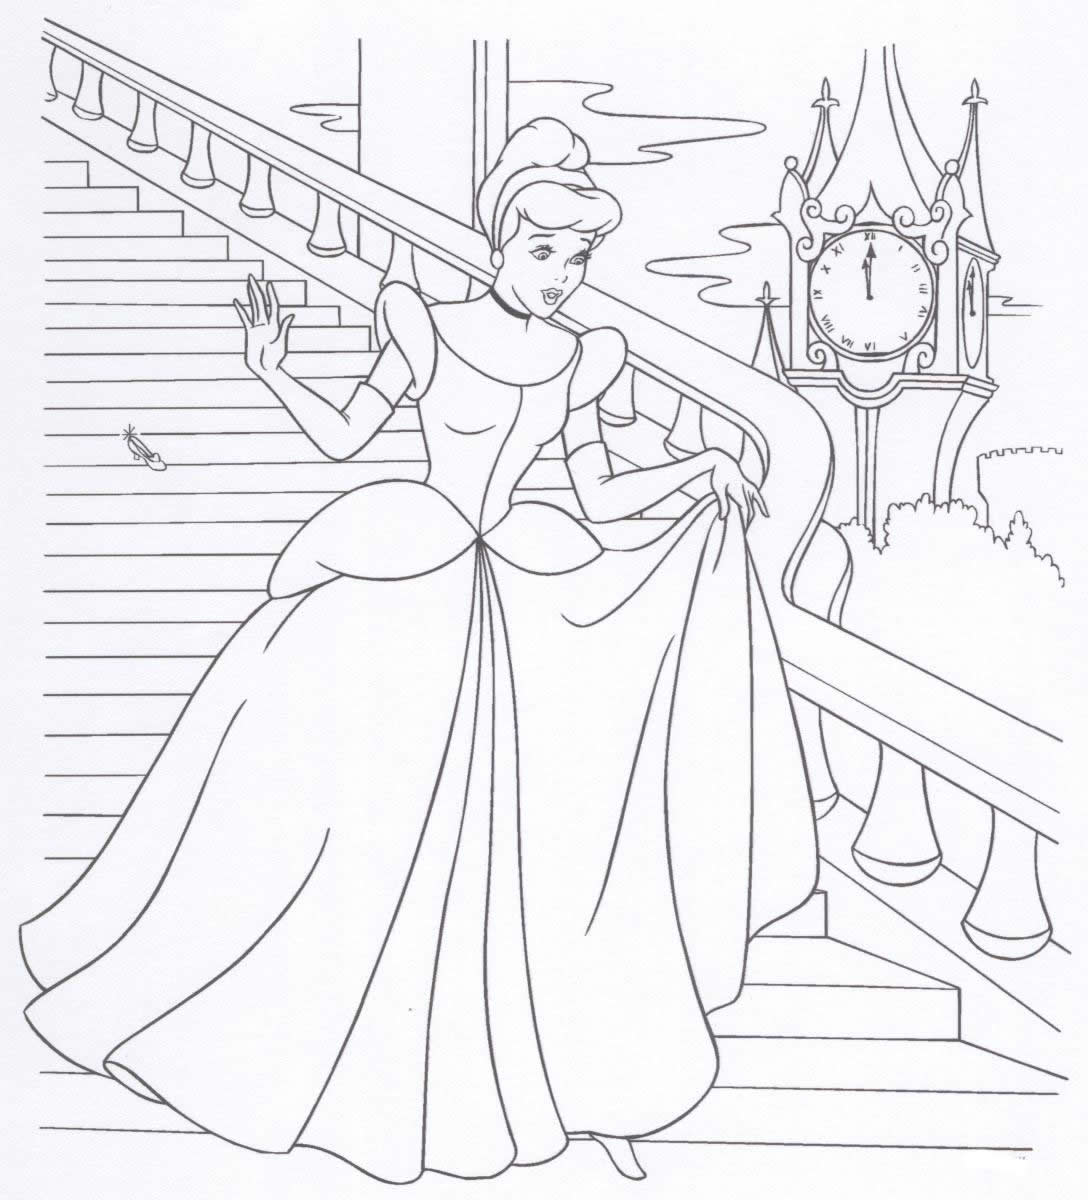 Free Printable Disney Princess Coloring Pages For Kids Princess Images Printable